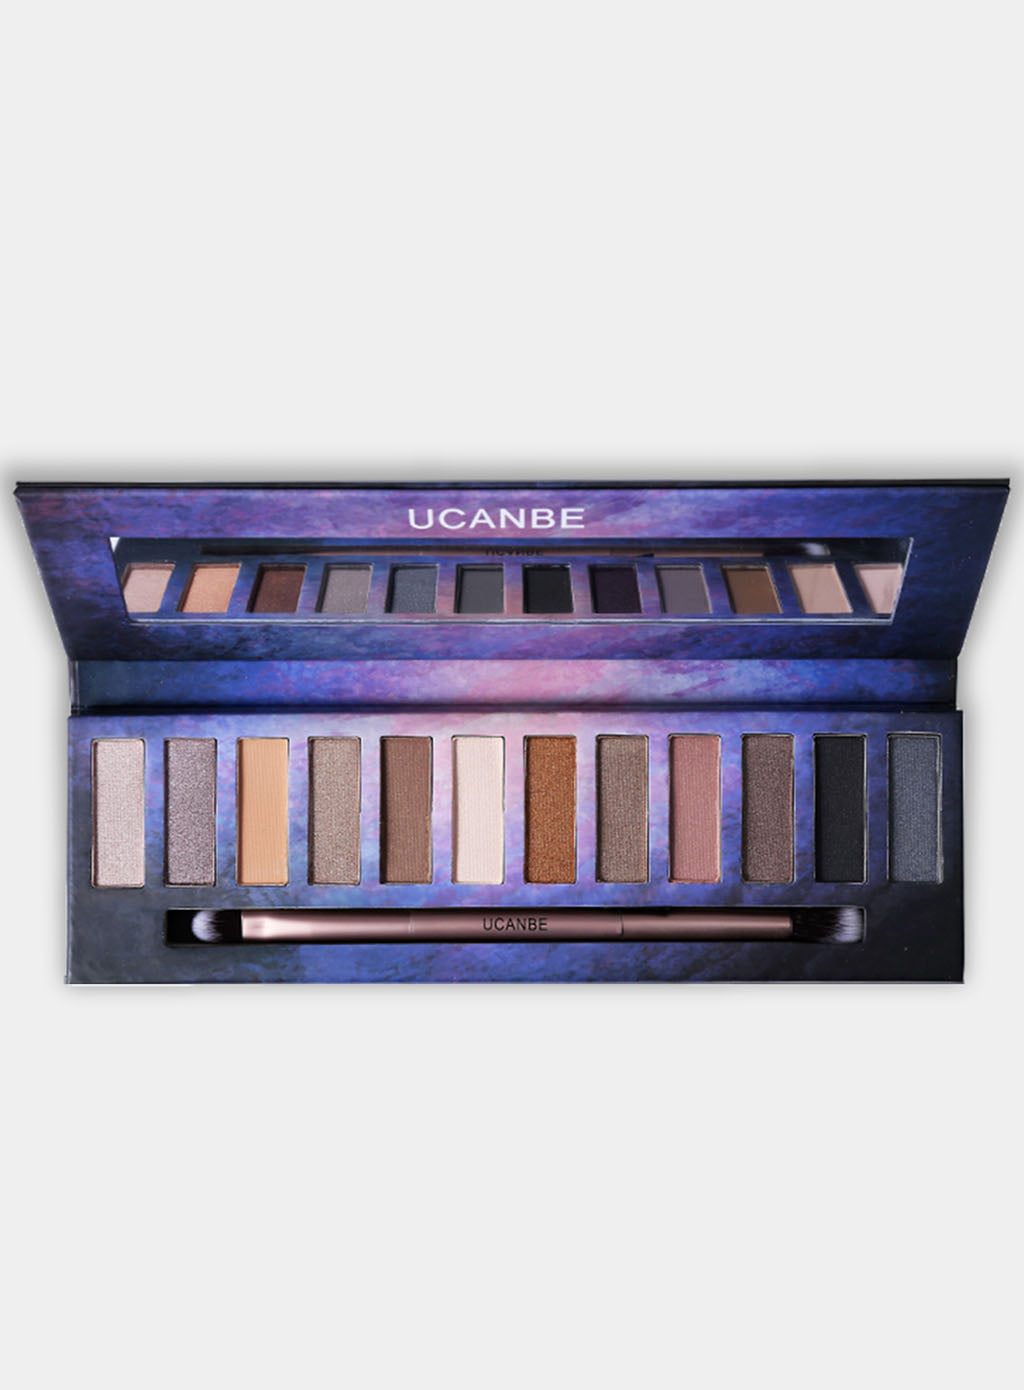 UCANBE Double Exposure 12 Color Eyeshadow Palette